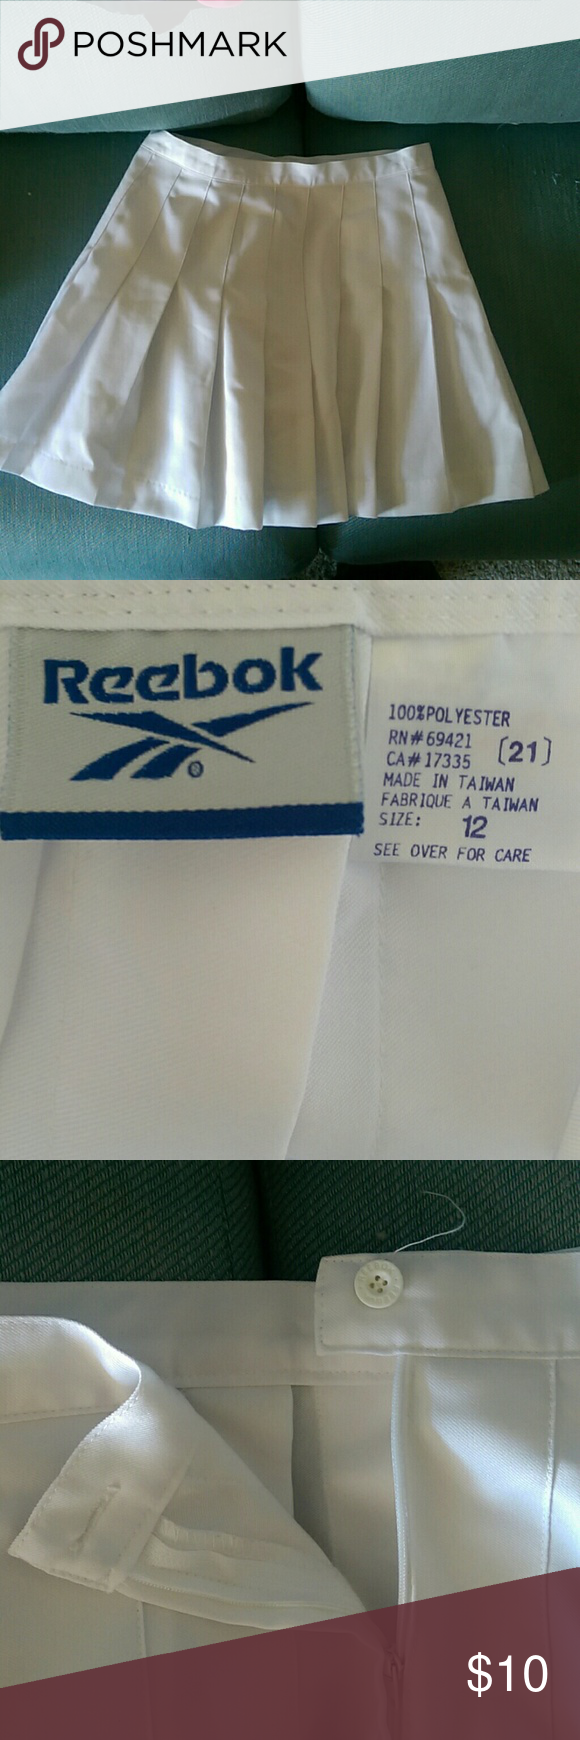 White golf / tennis skirt Super cute pleated tennis or golf skirt by Reebok it's a size 12 in perfect condition it's new but it doesn't have the tags on it Reebok Skirts Mini